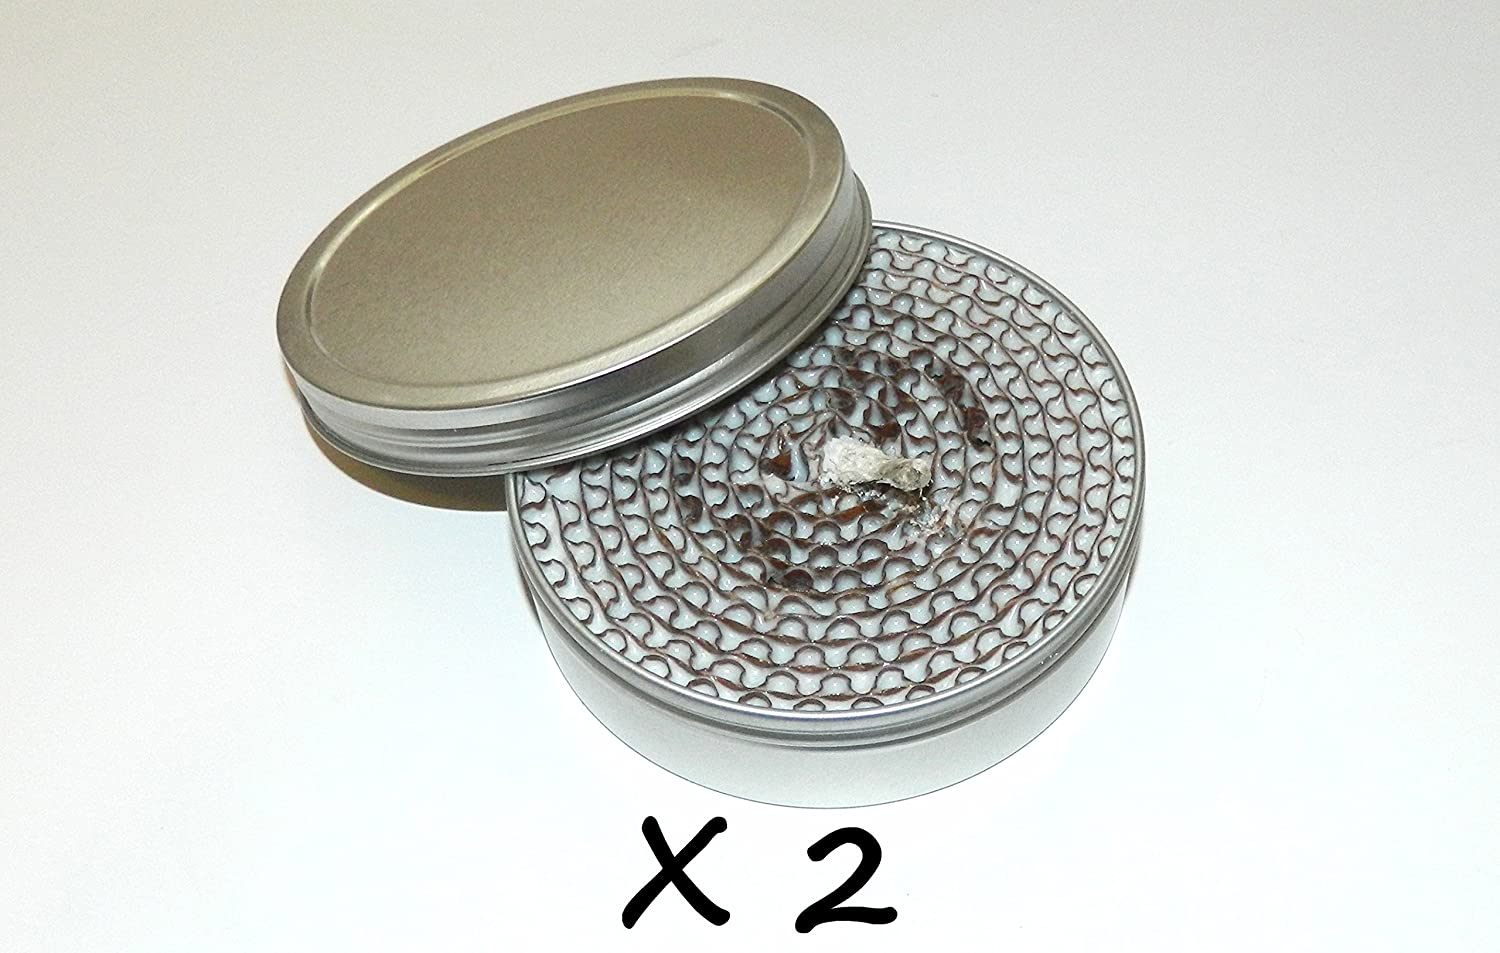 2-Hr. Burn-Time Outdoor Survival Fire Starter Screw-Top Lid Buddy Burner Camping Bug Out Stove (2-Pack)